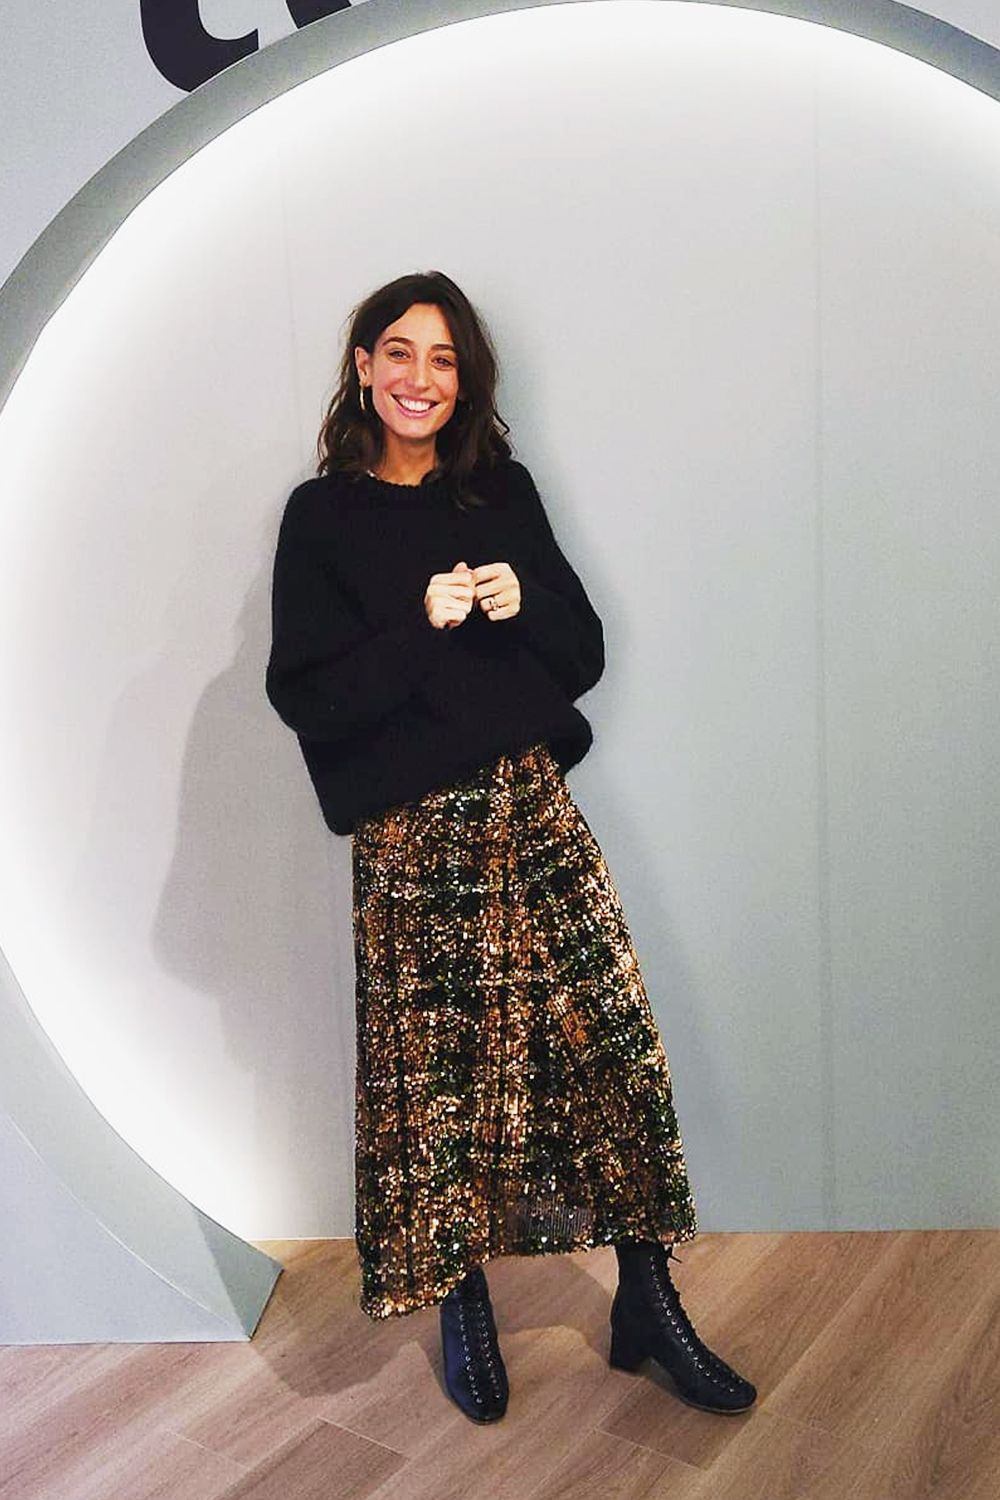 These 3 Zara Party Skirts Are All Over Instagram